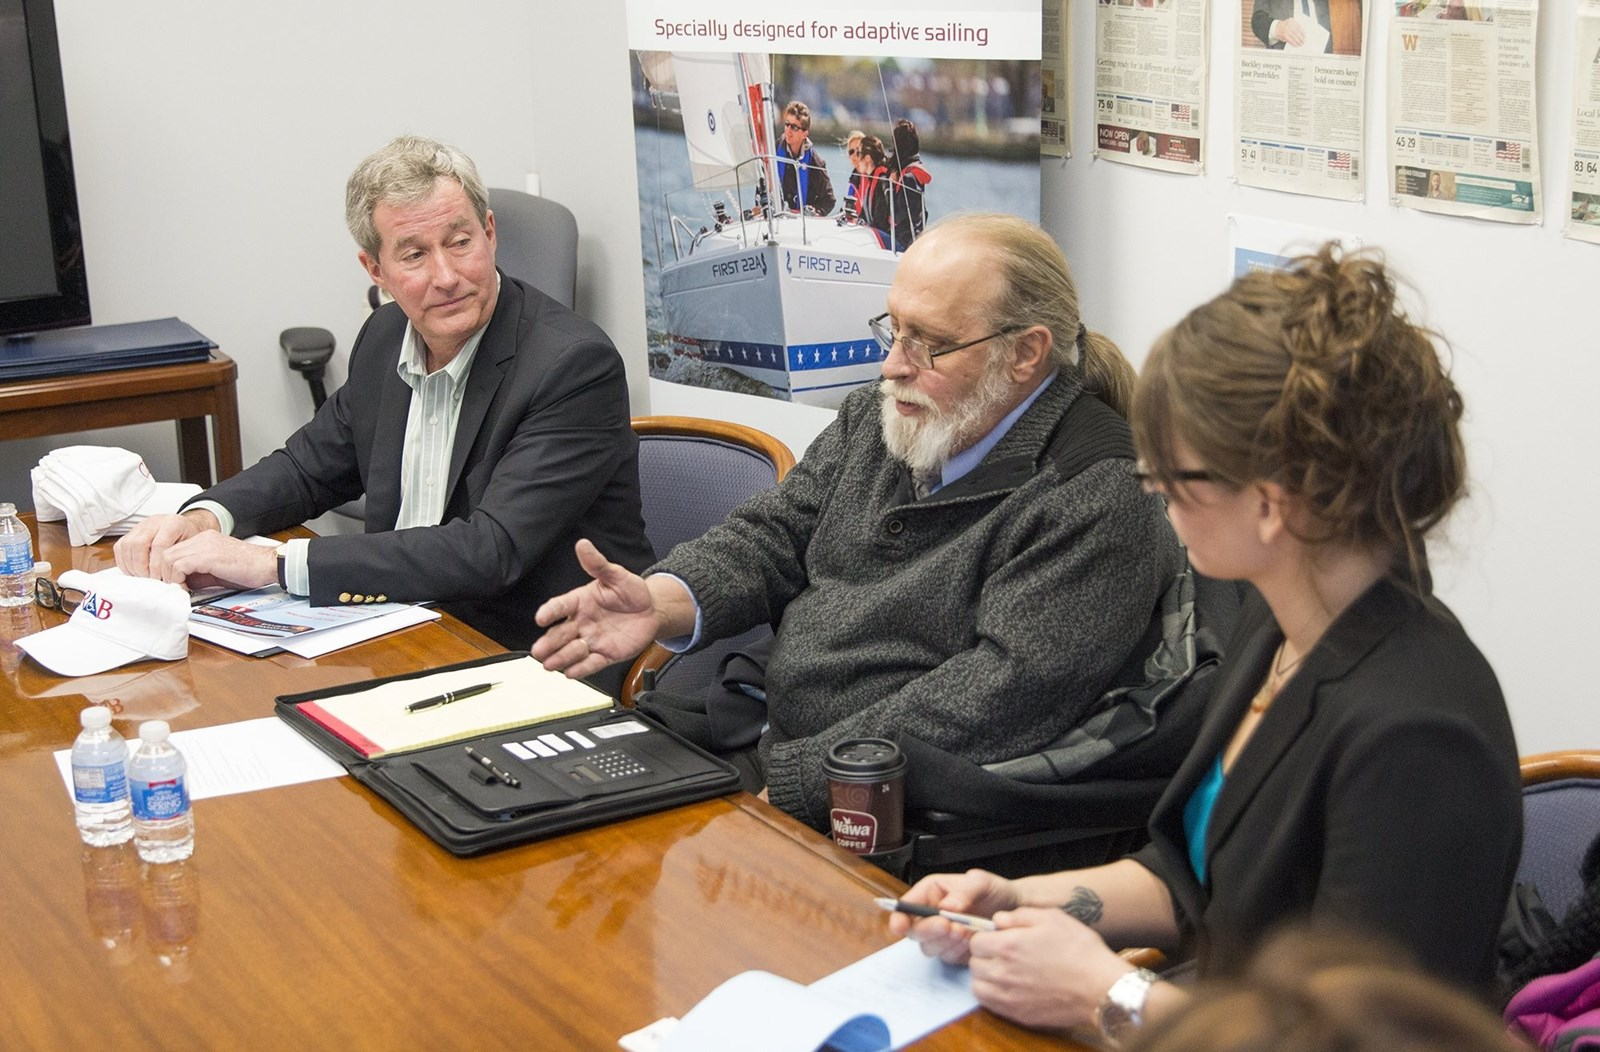 Paul Bollinger, Barry Considine and Sarah Winchester speak with the Capital Gazette Editorial Board on Thursday, February 8 about plans for a new accessible boating center on Back Creek.)